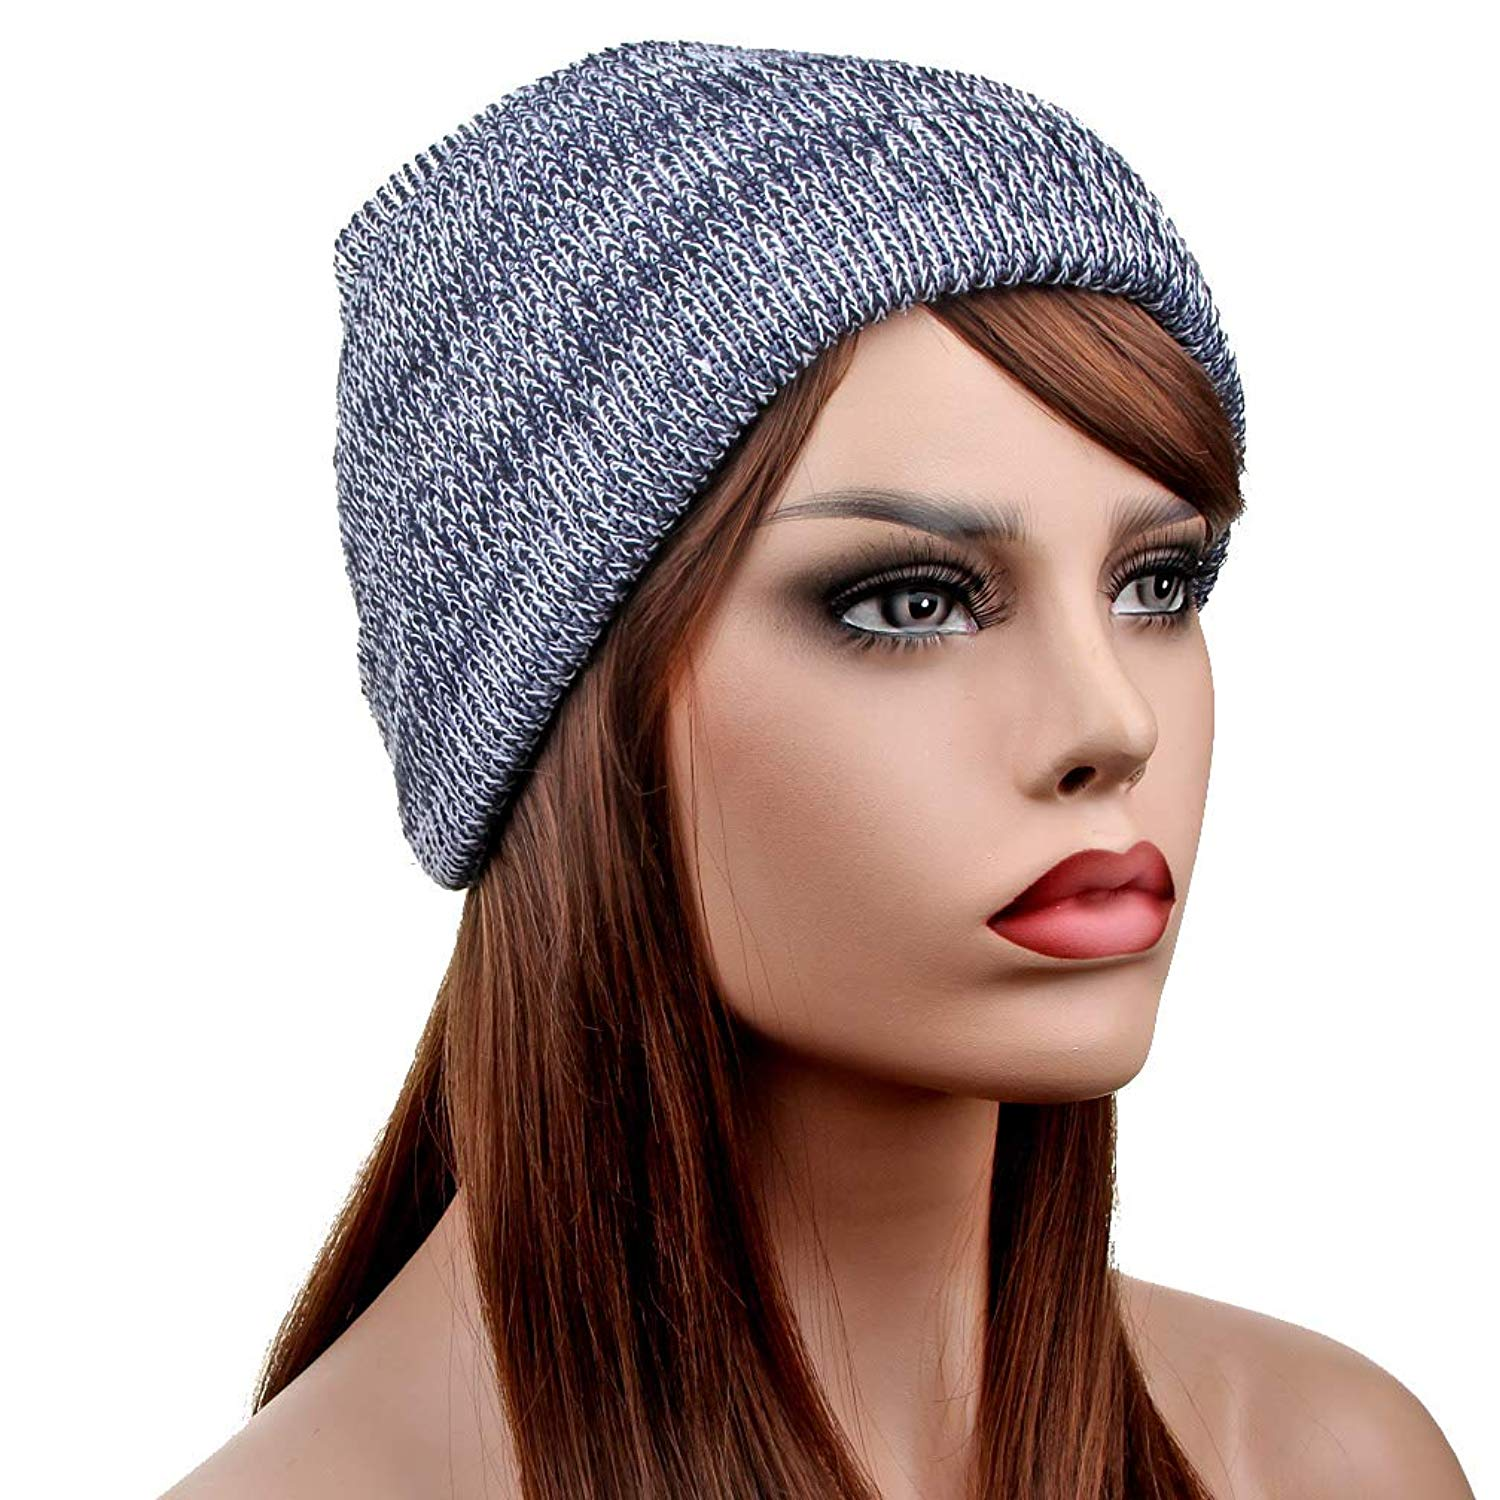 5332502b608 Get Quotations · TENGYI YiTeng Unisex Winter Beanie Knit Crochet Ski Hat  Oversized Cap Hat